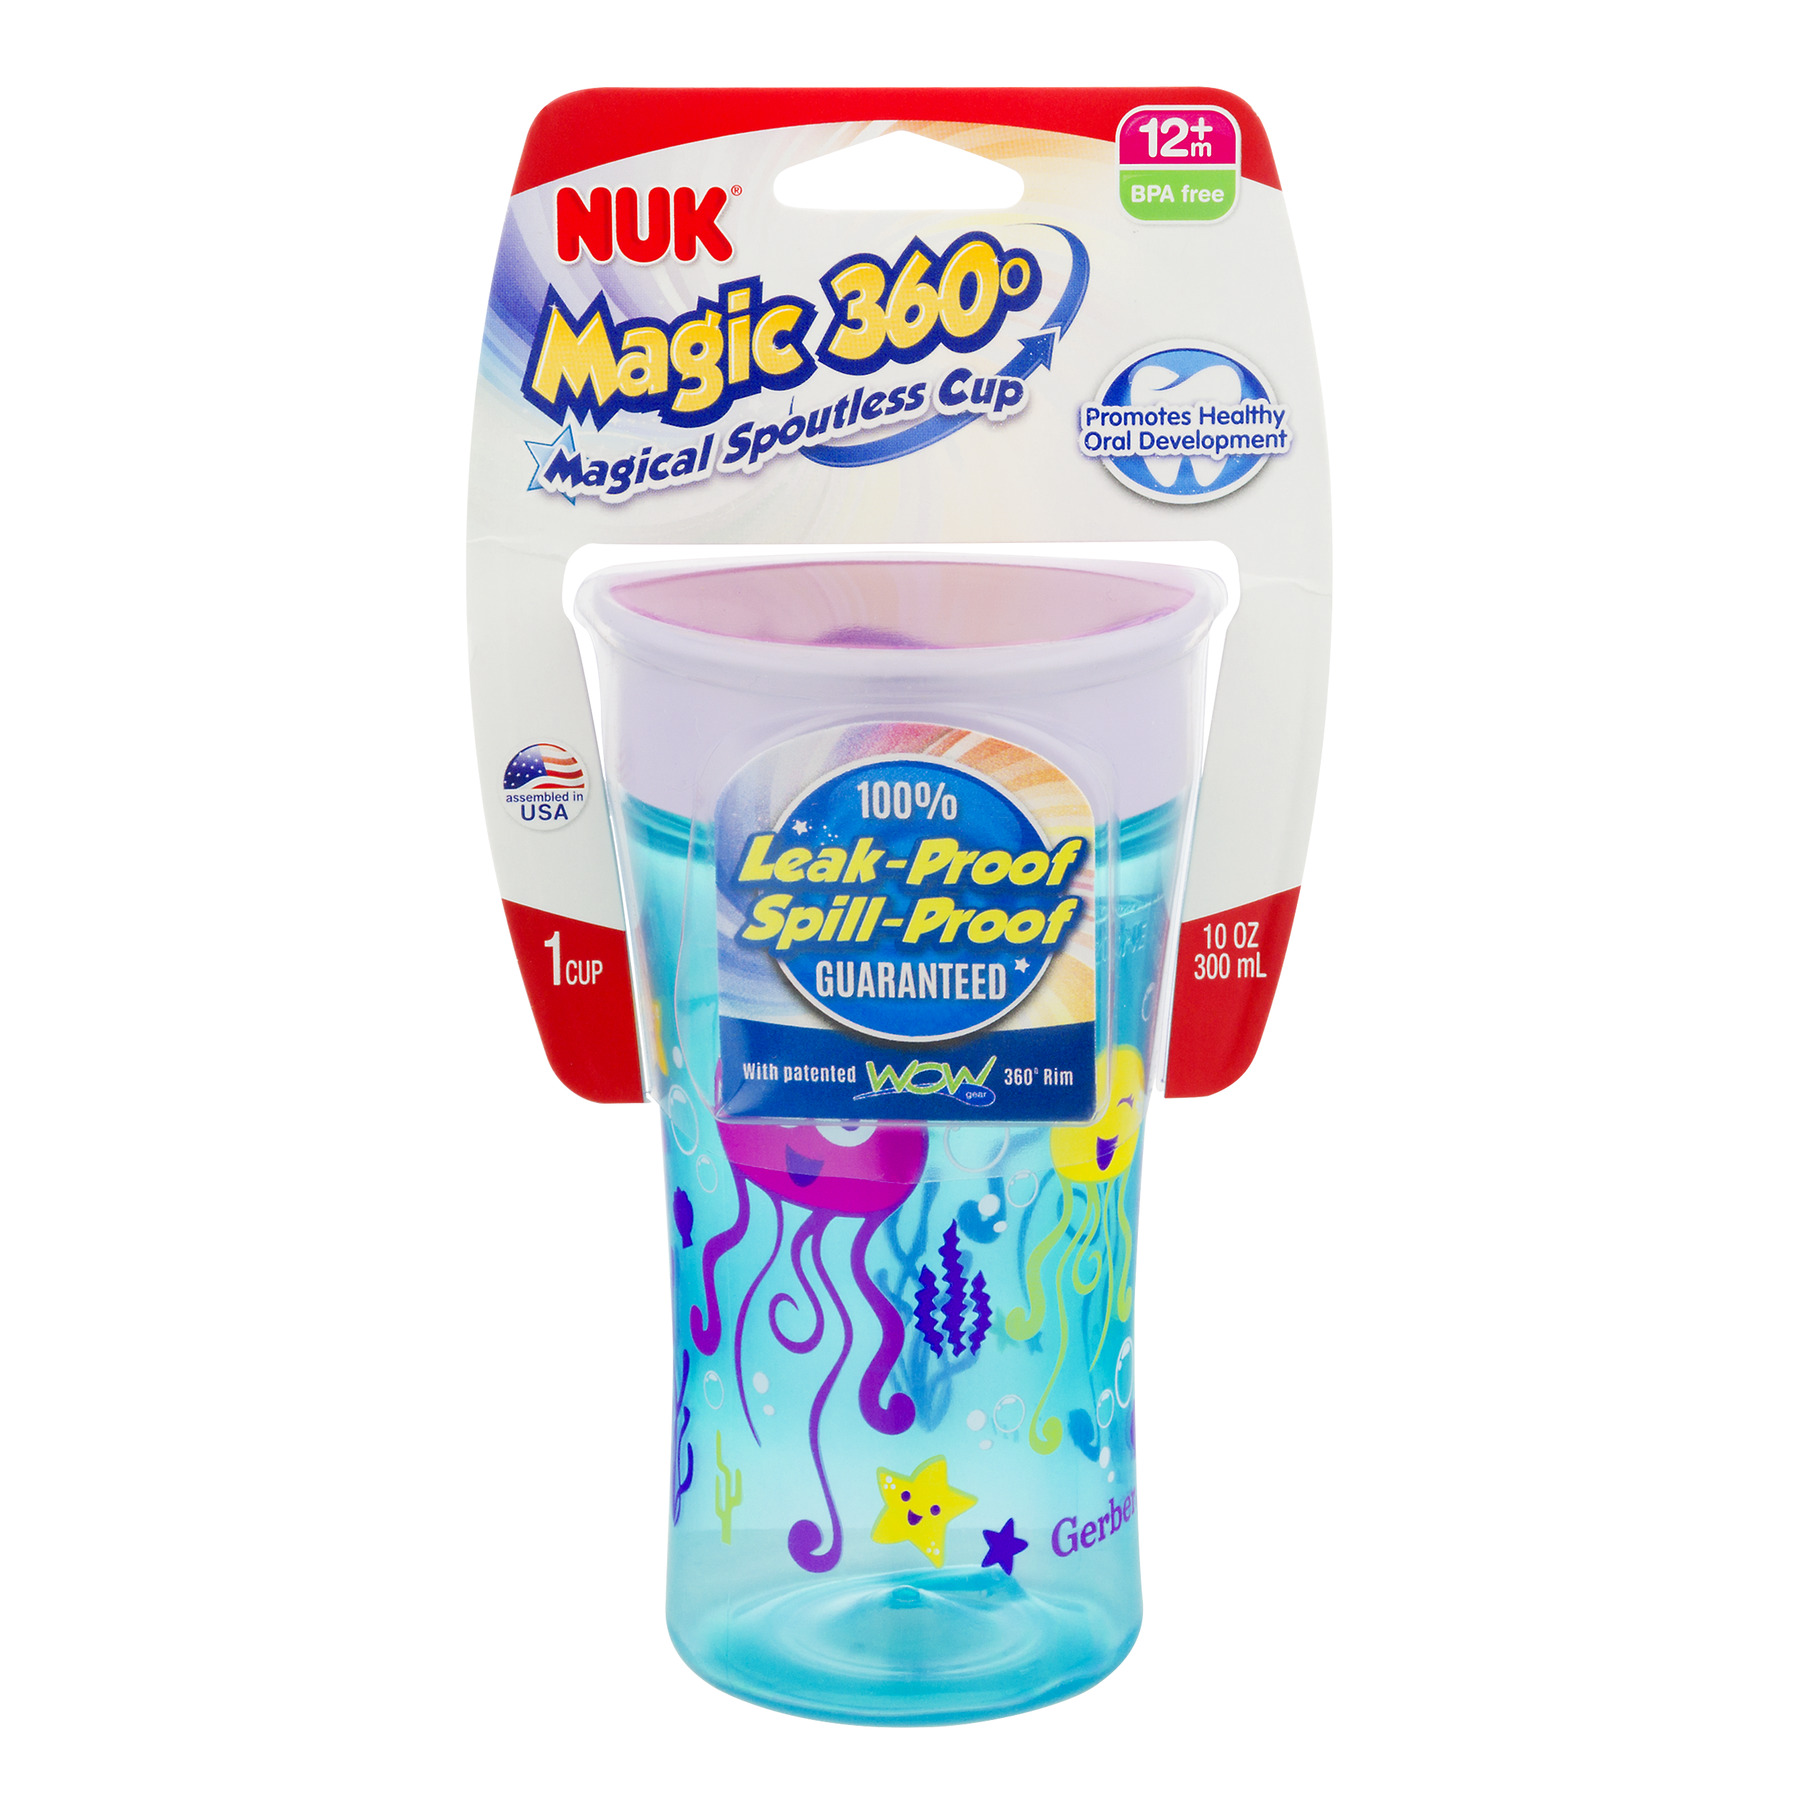 NUK Magic 360° Magical Spoutless Cup 12+m - 1 CT1.0 CT (Color may vary)